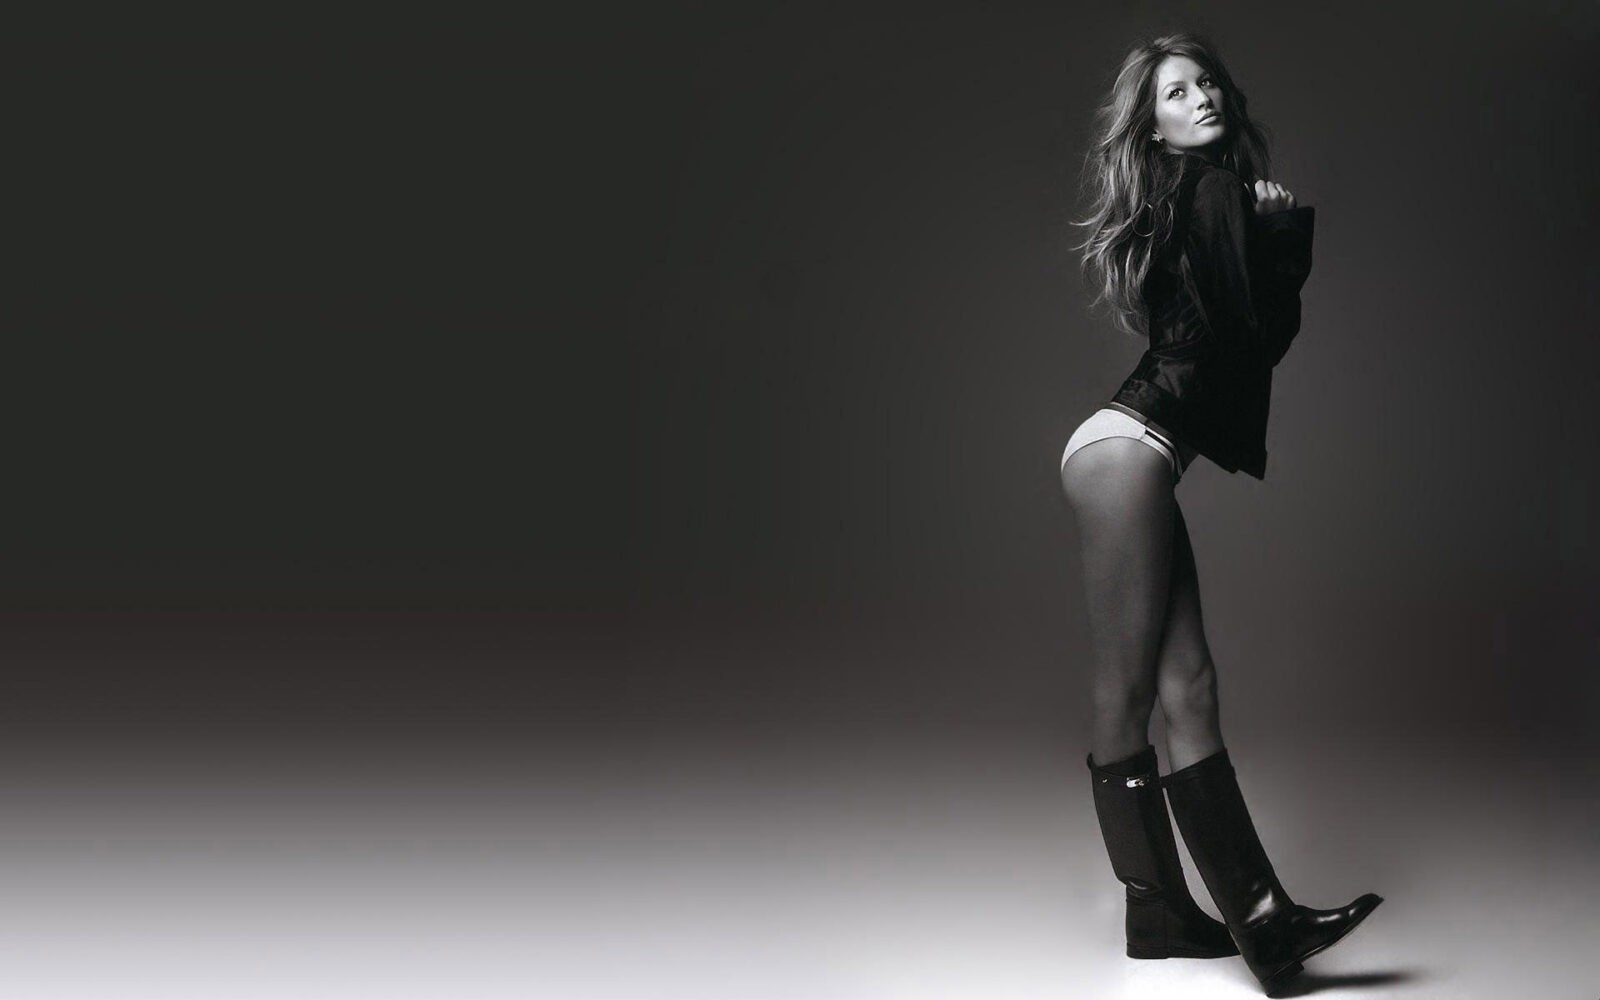 Dark background Gisele Bundchen in black boots